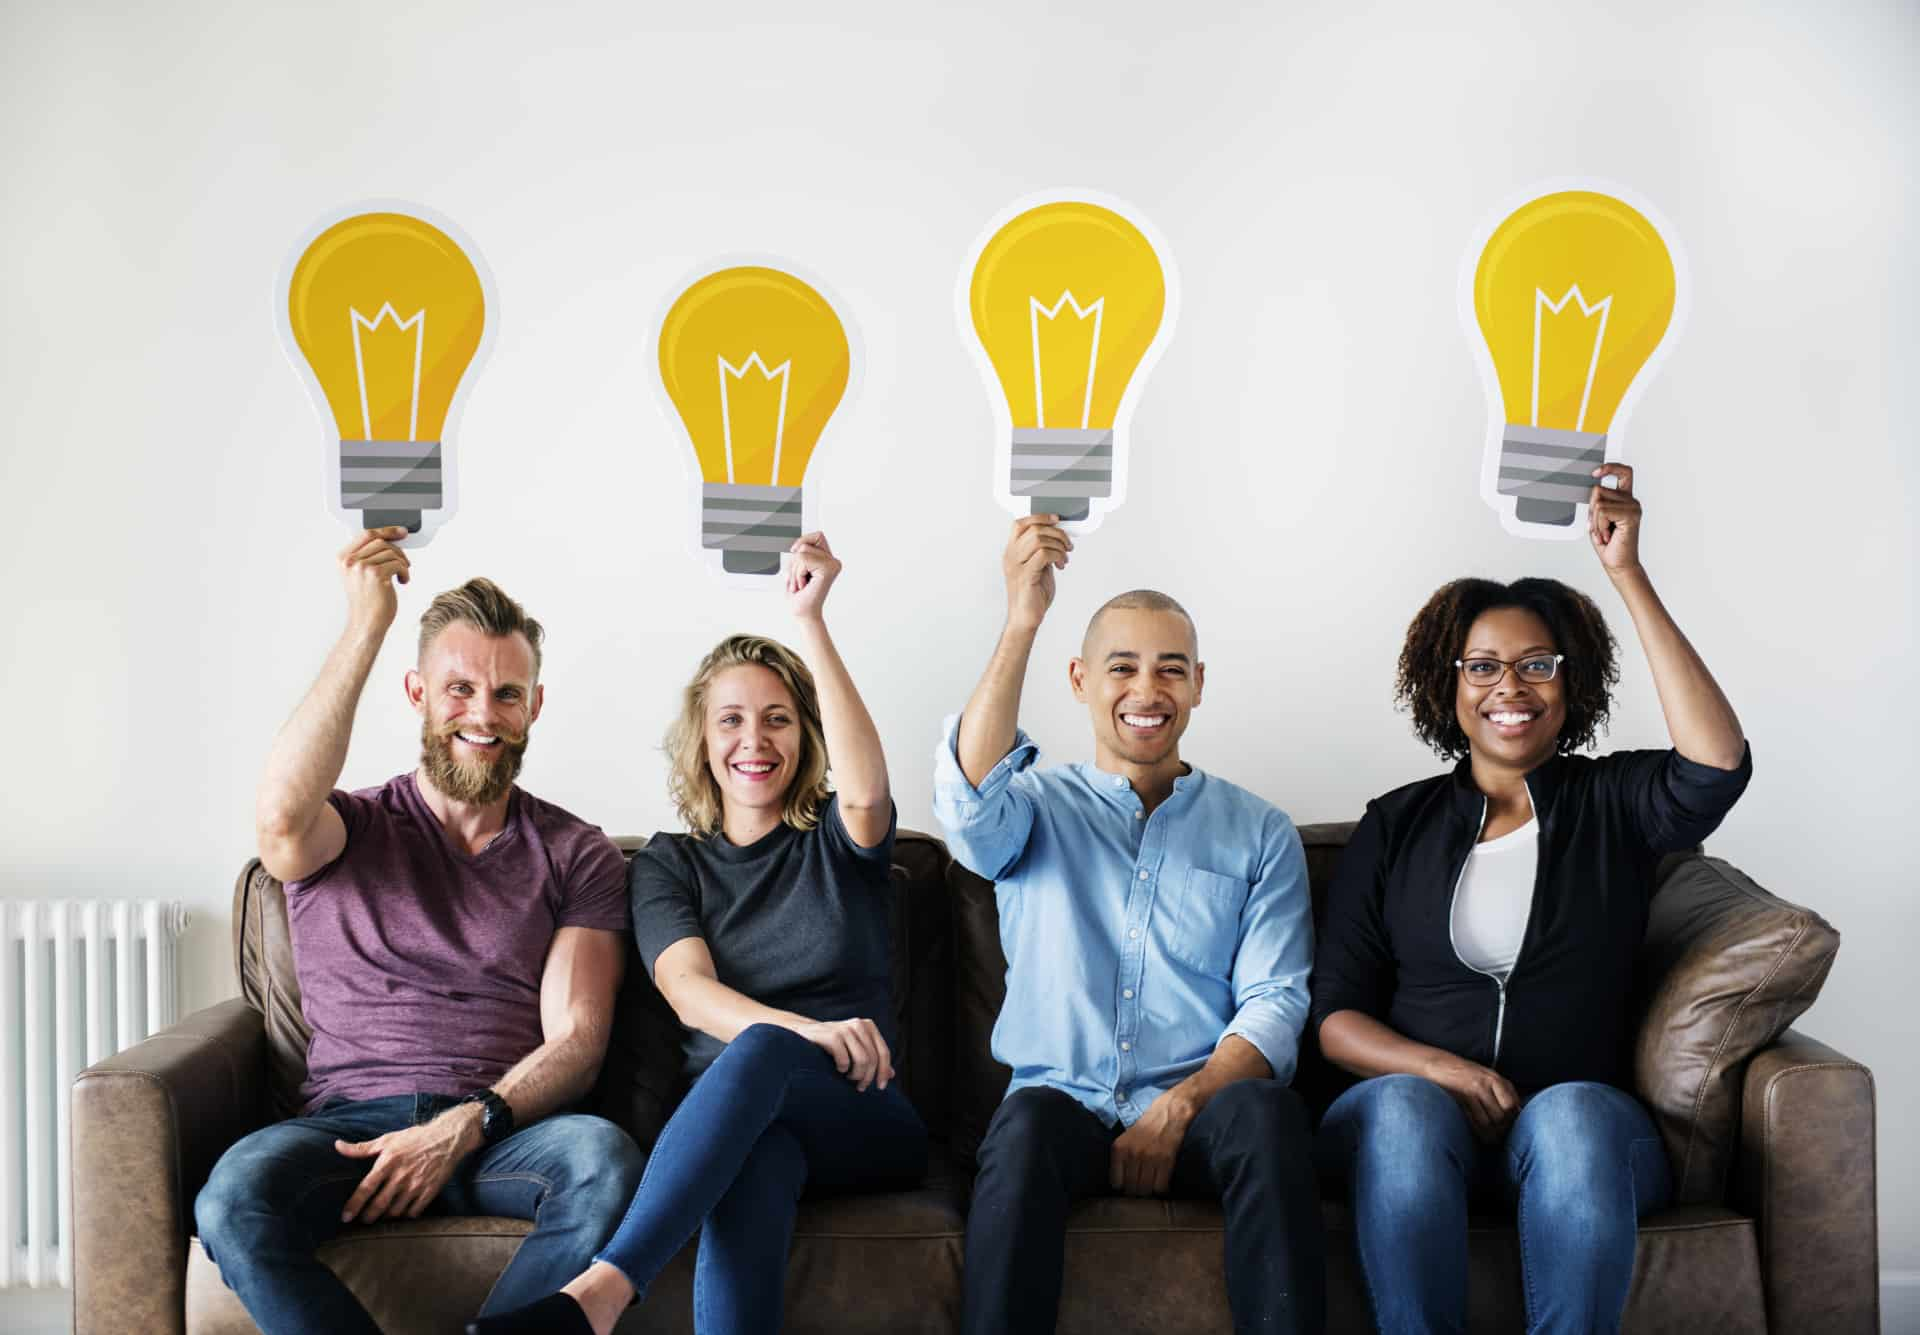 Risk and rewards of innovation, group of people holding idea lightbulbs